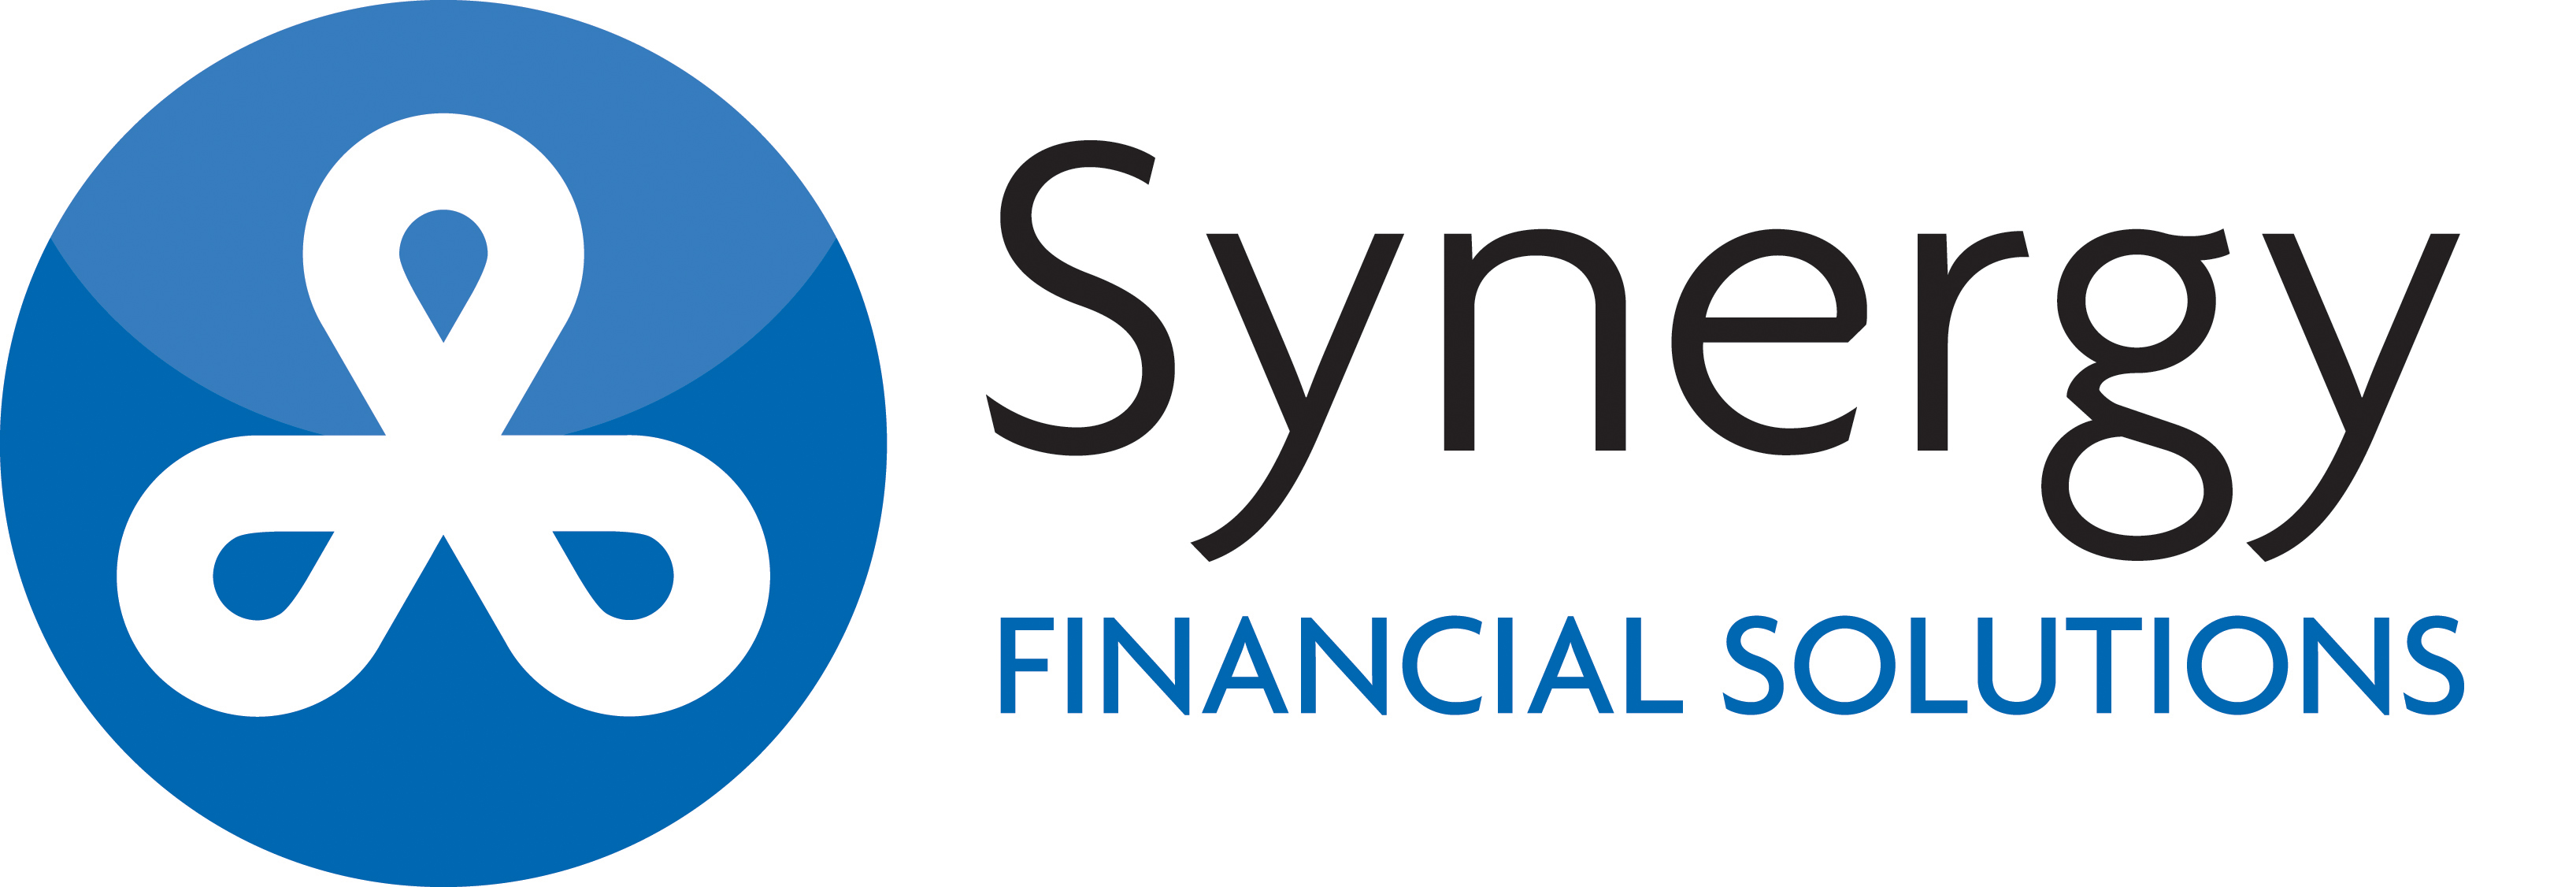 Synergy Fincial Solutions